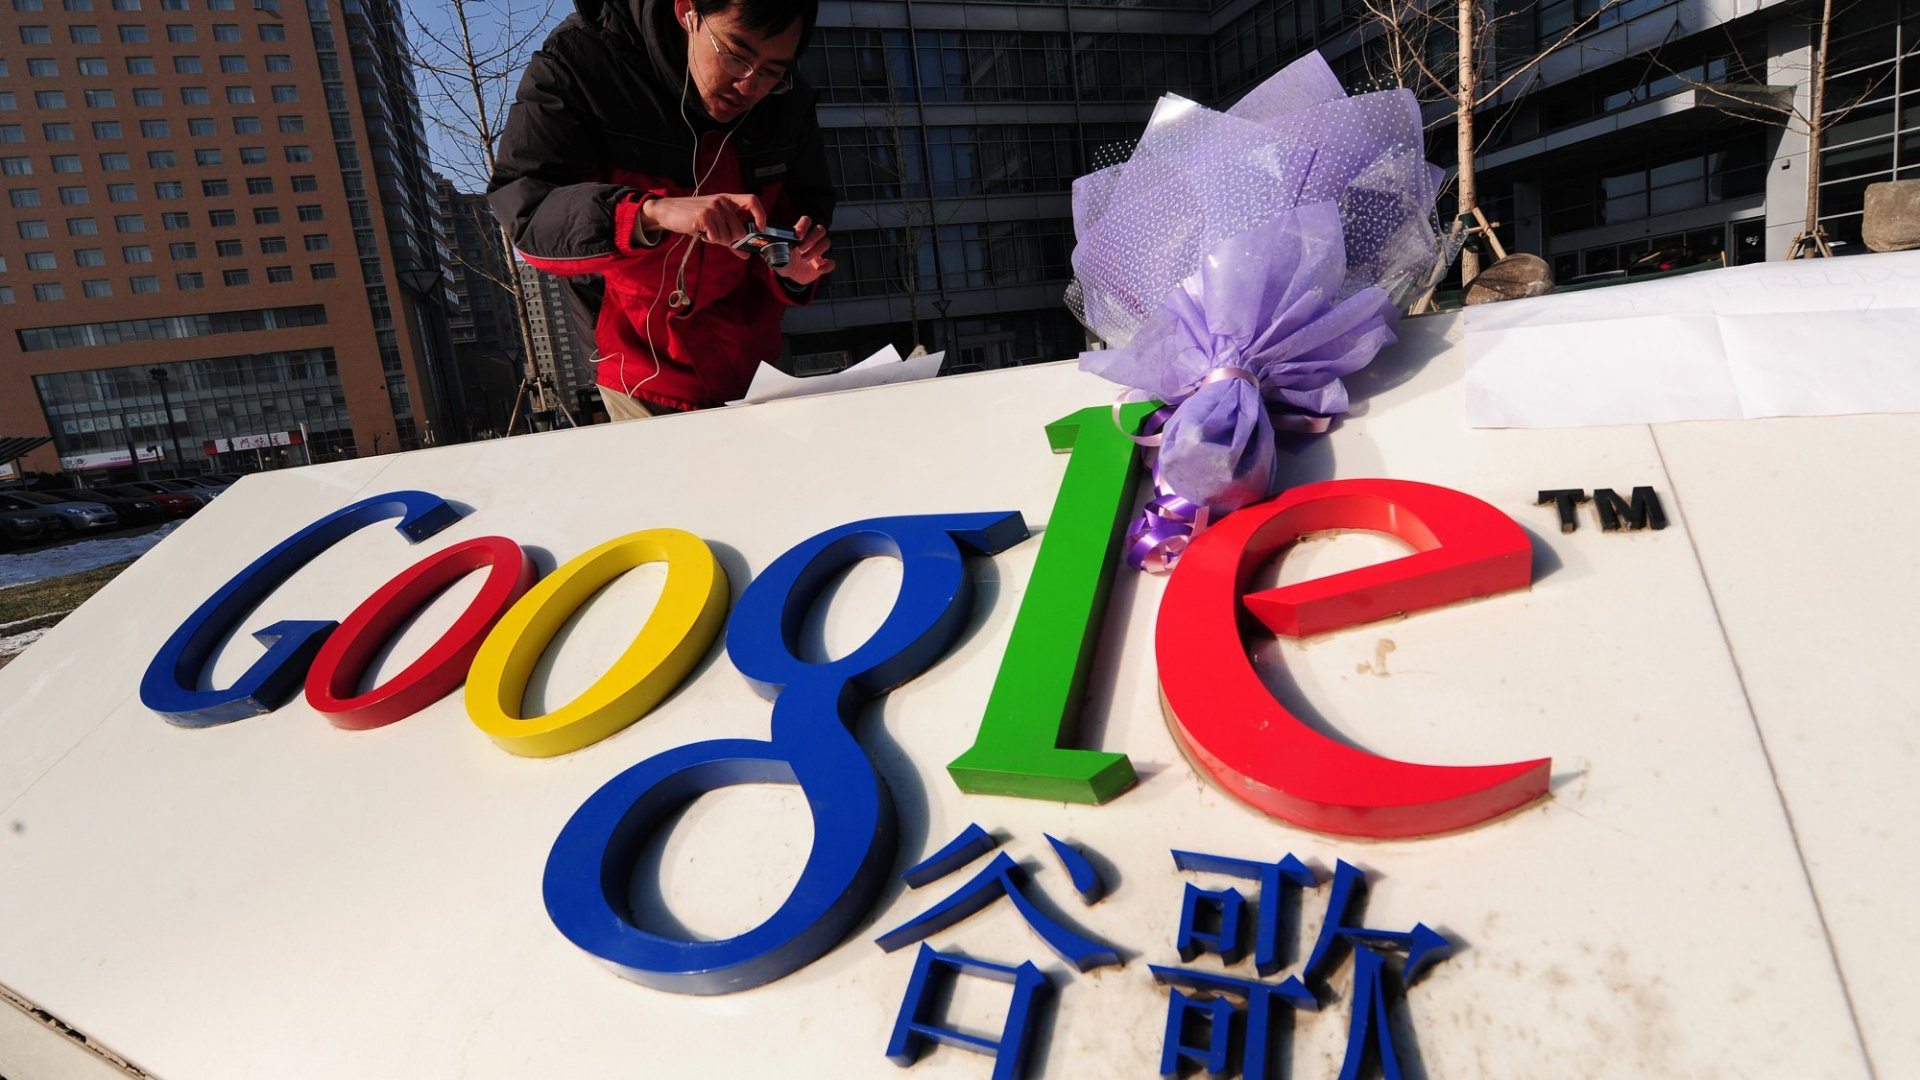 Google Is Launching a Censored Search Engine in China After Meeting With Government Officials